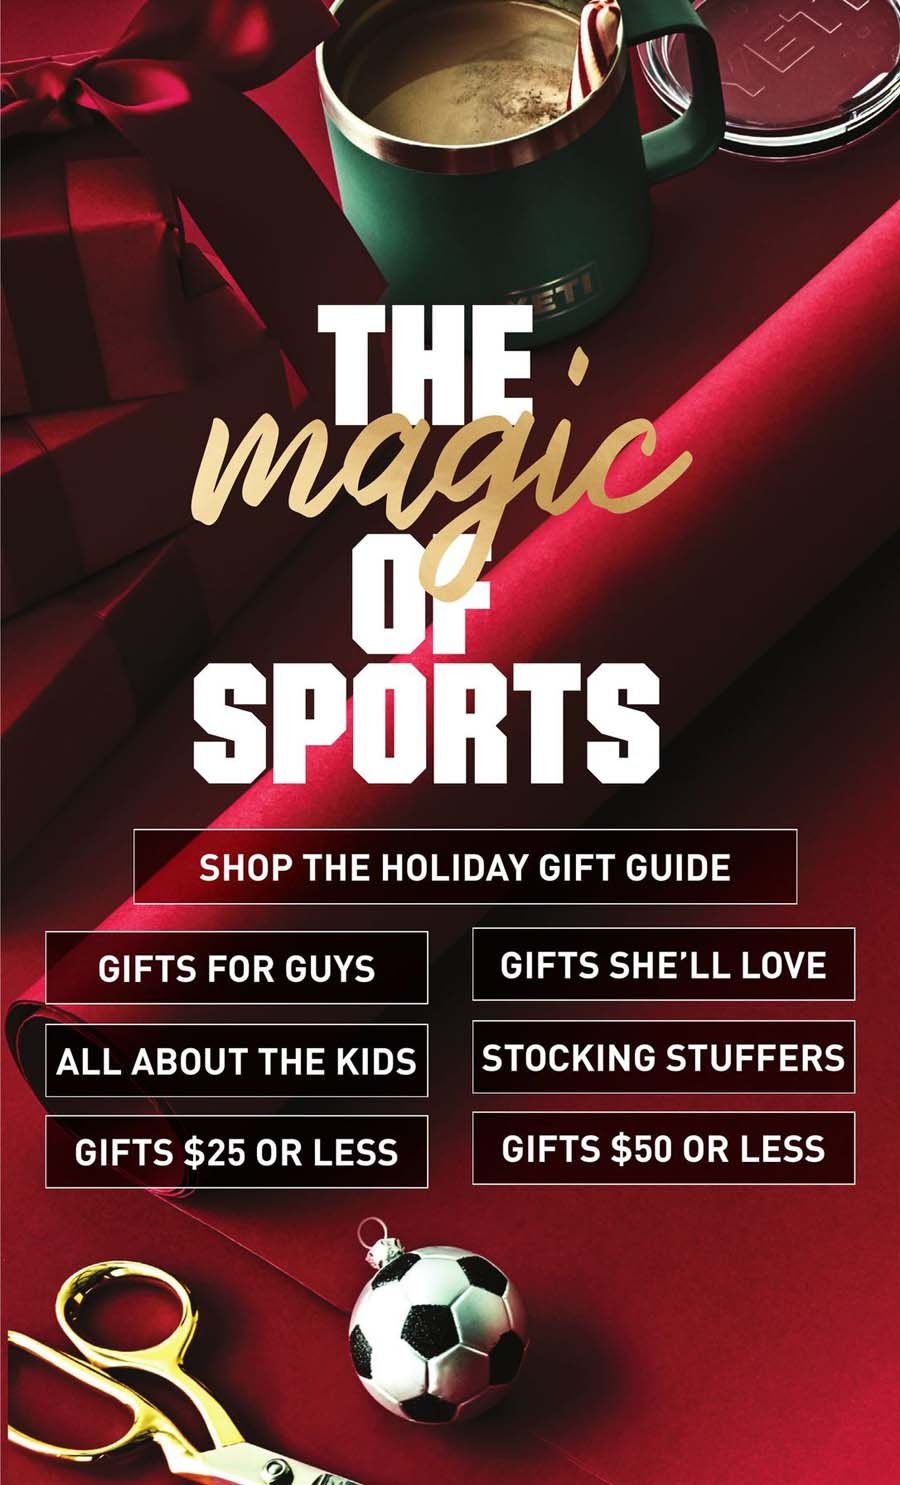 Dick's Sporting Goods Cyber Monday 2020 Page 2